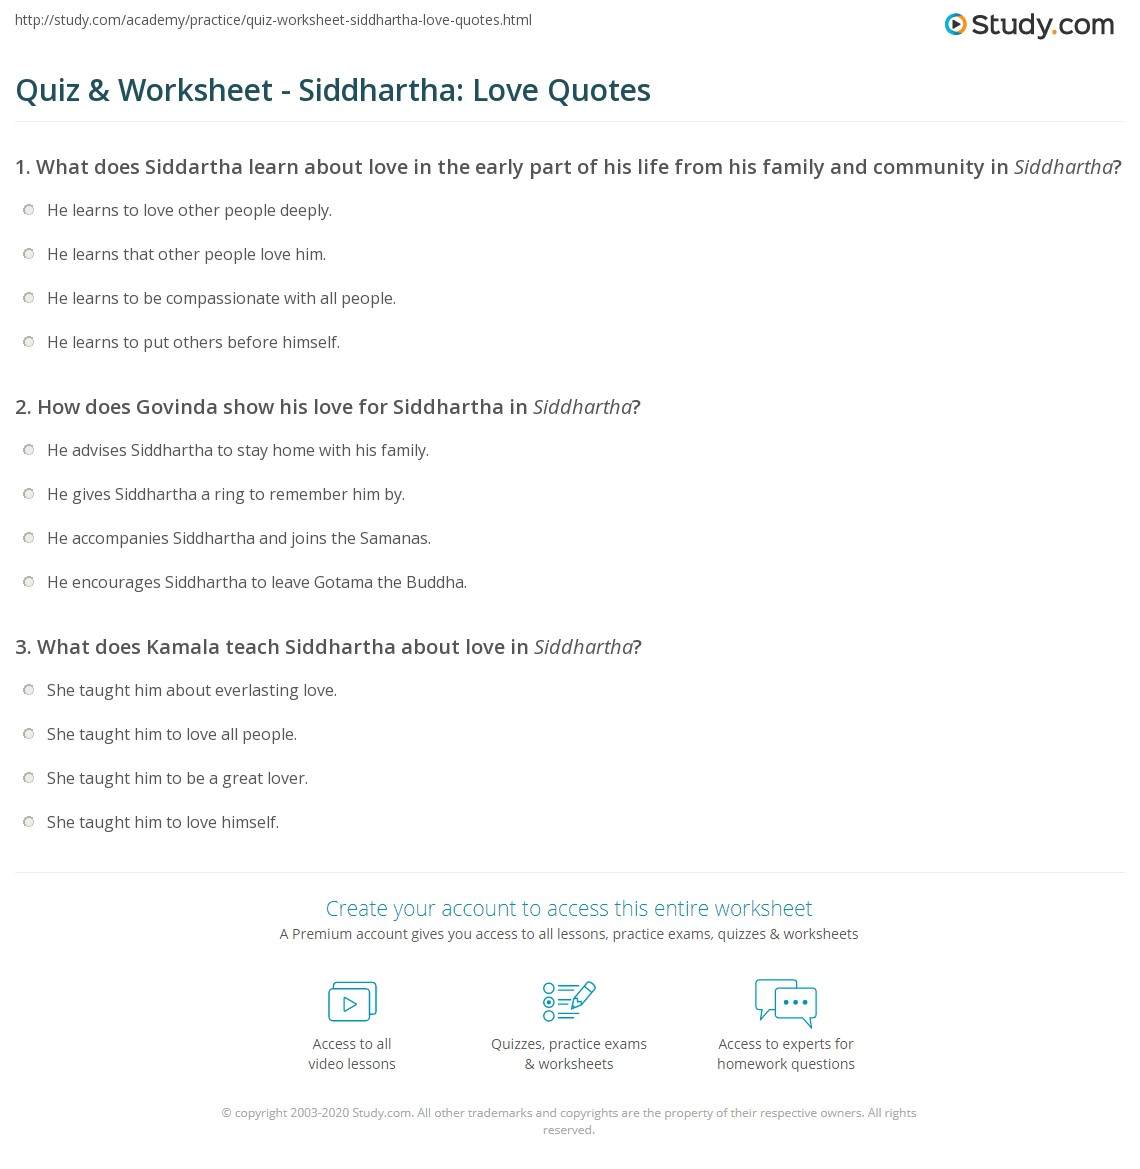 Everlasting Love Quotes Quiz & Worksheet  Siddhartha Love Quotes  Study